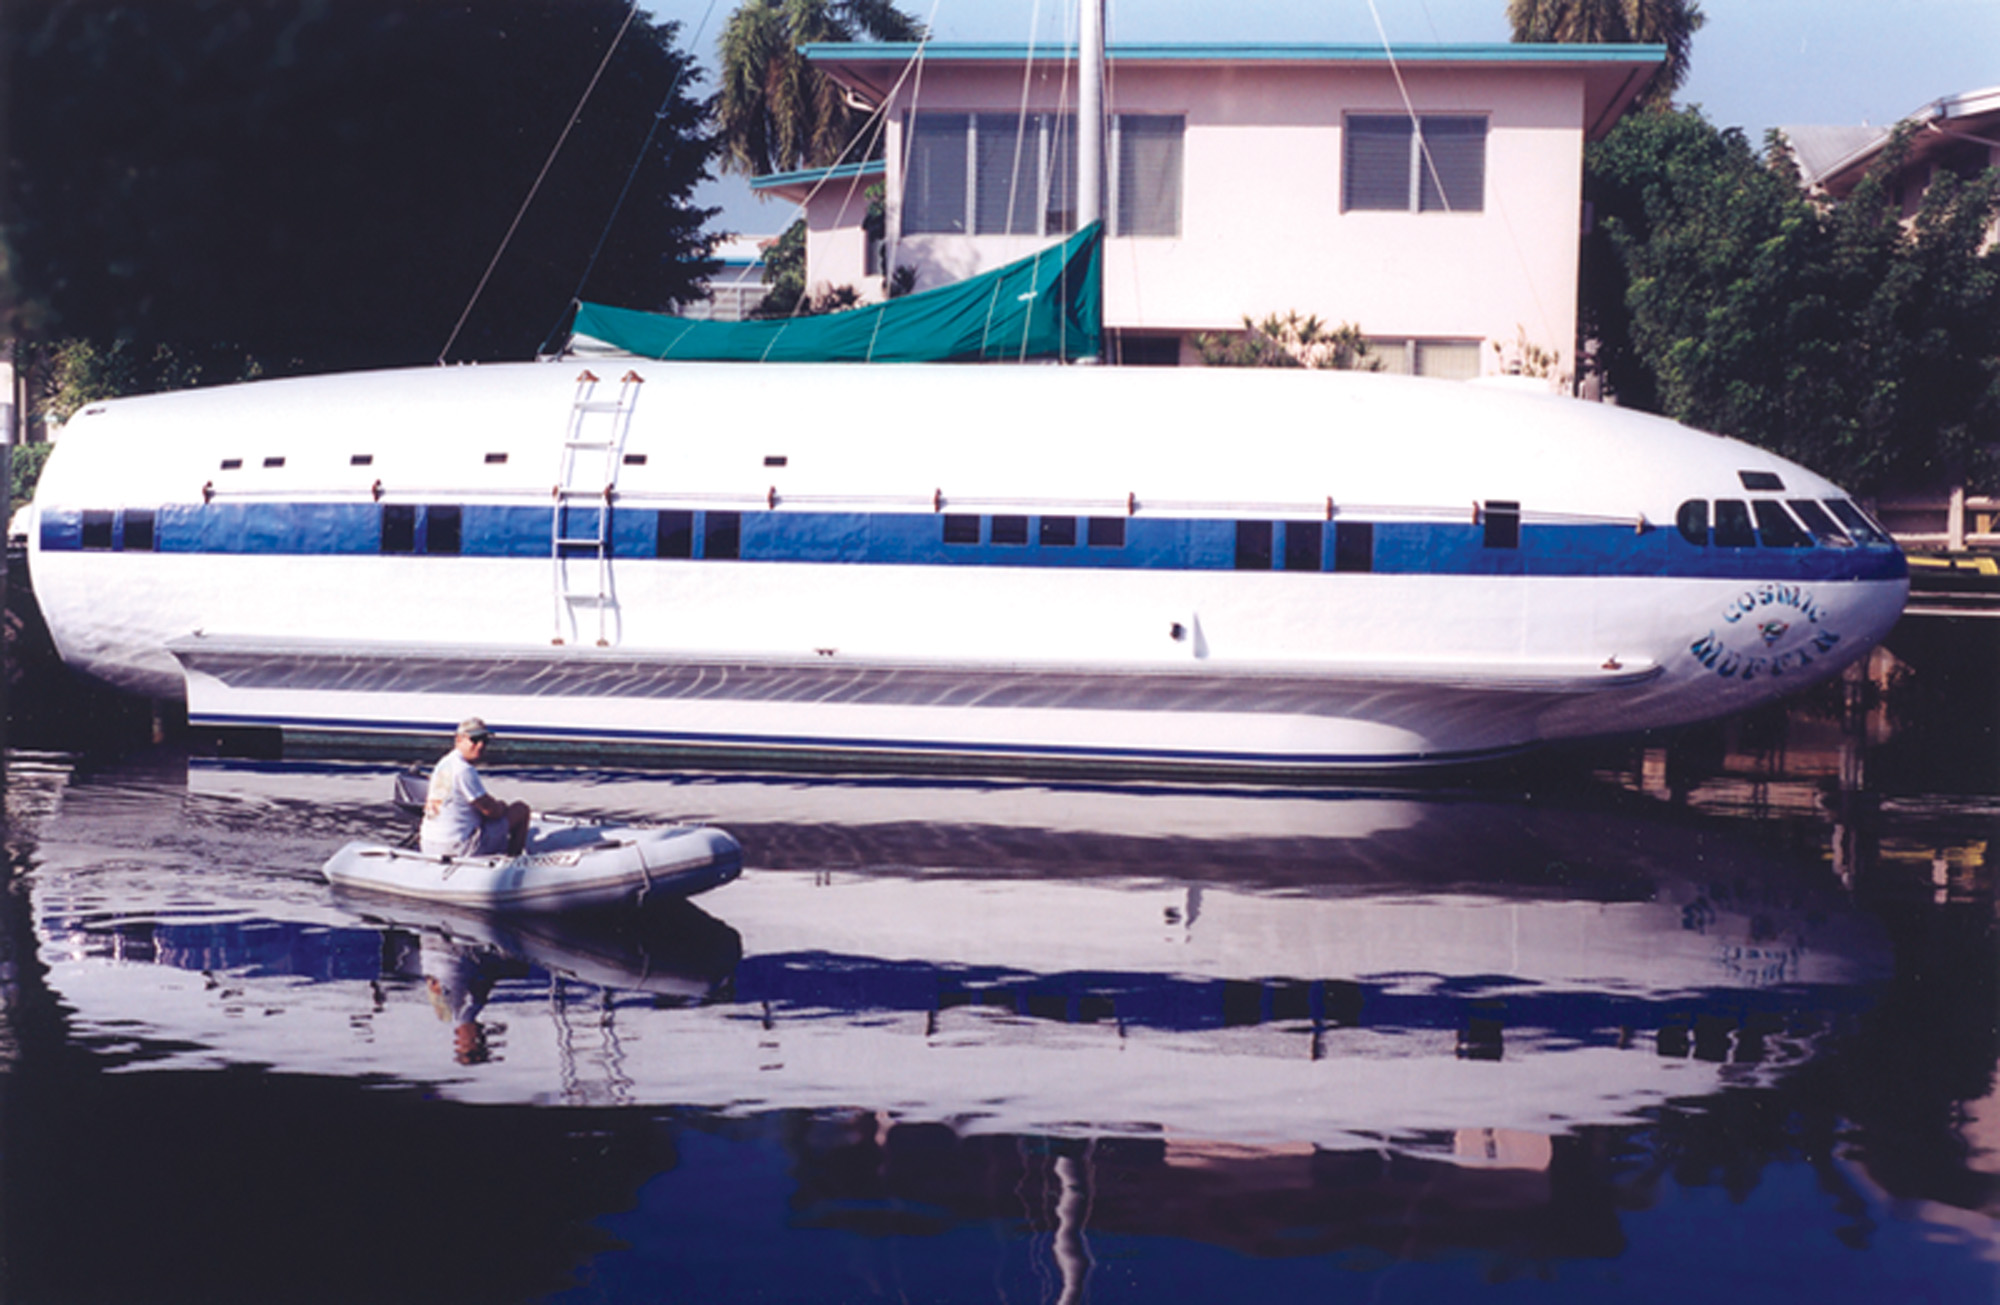 Dave Drimmer Pilots A Boat Next To His Boeing 307 Plane Boat At Home At